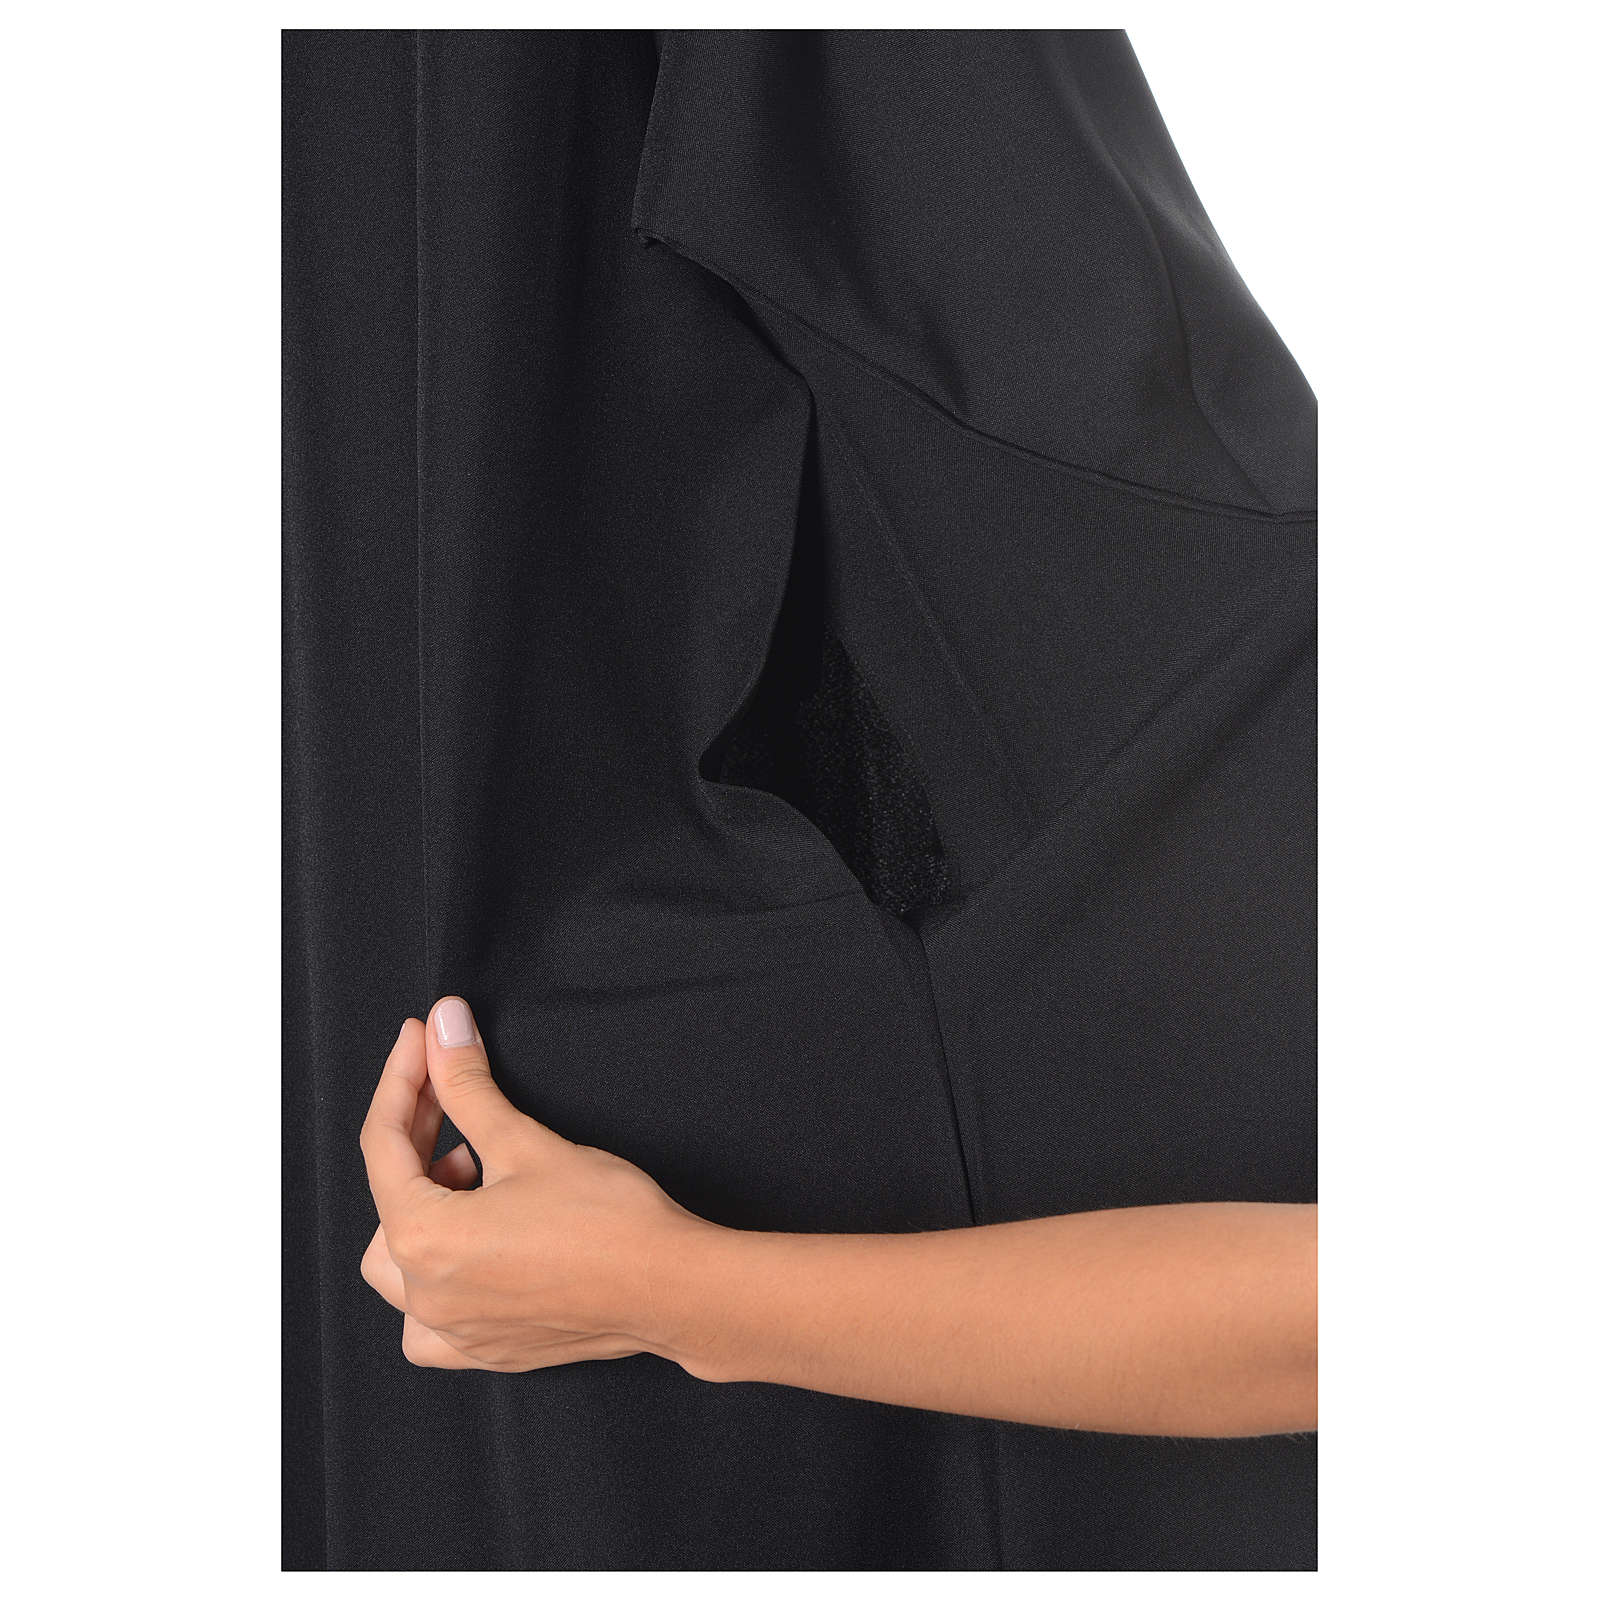 Benedictine black alb in polyester 4